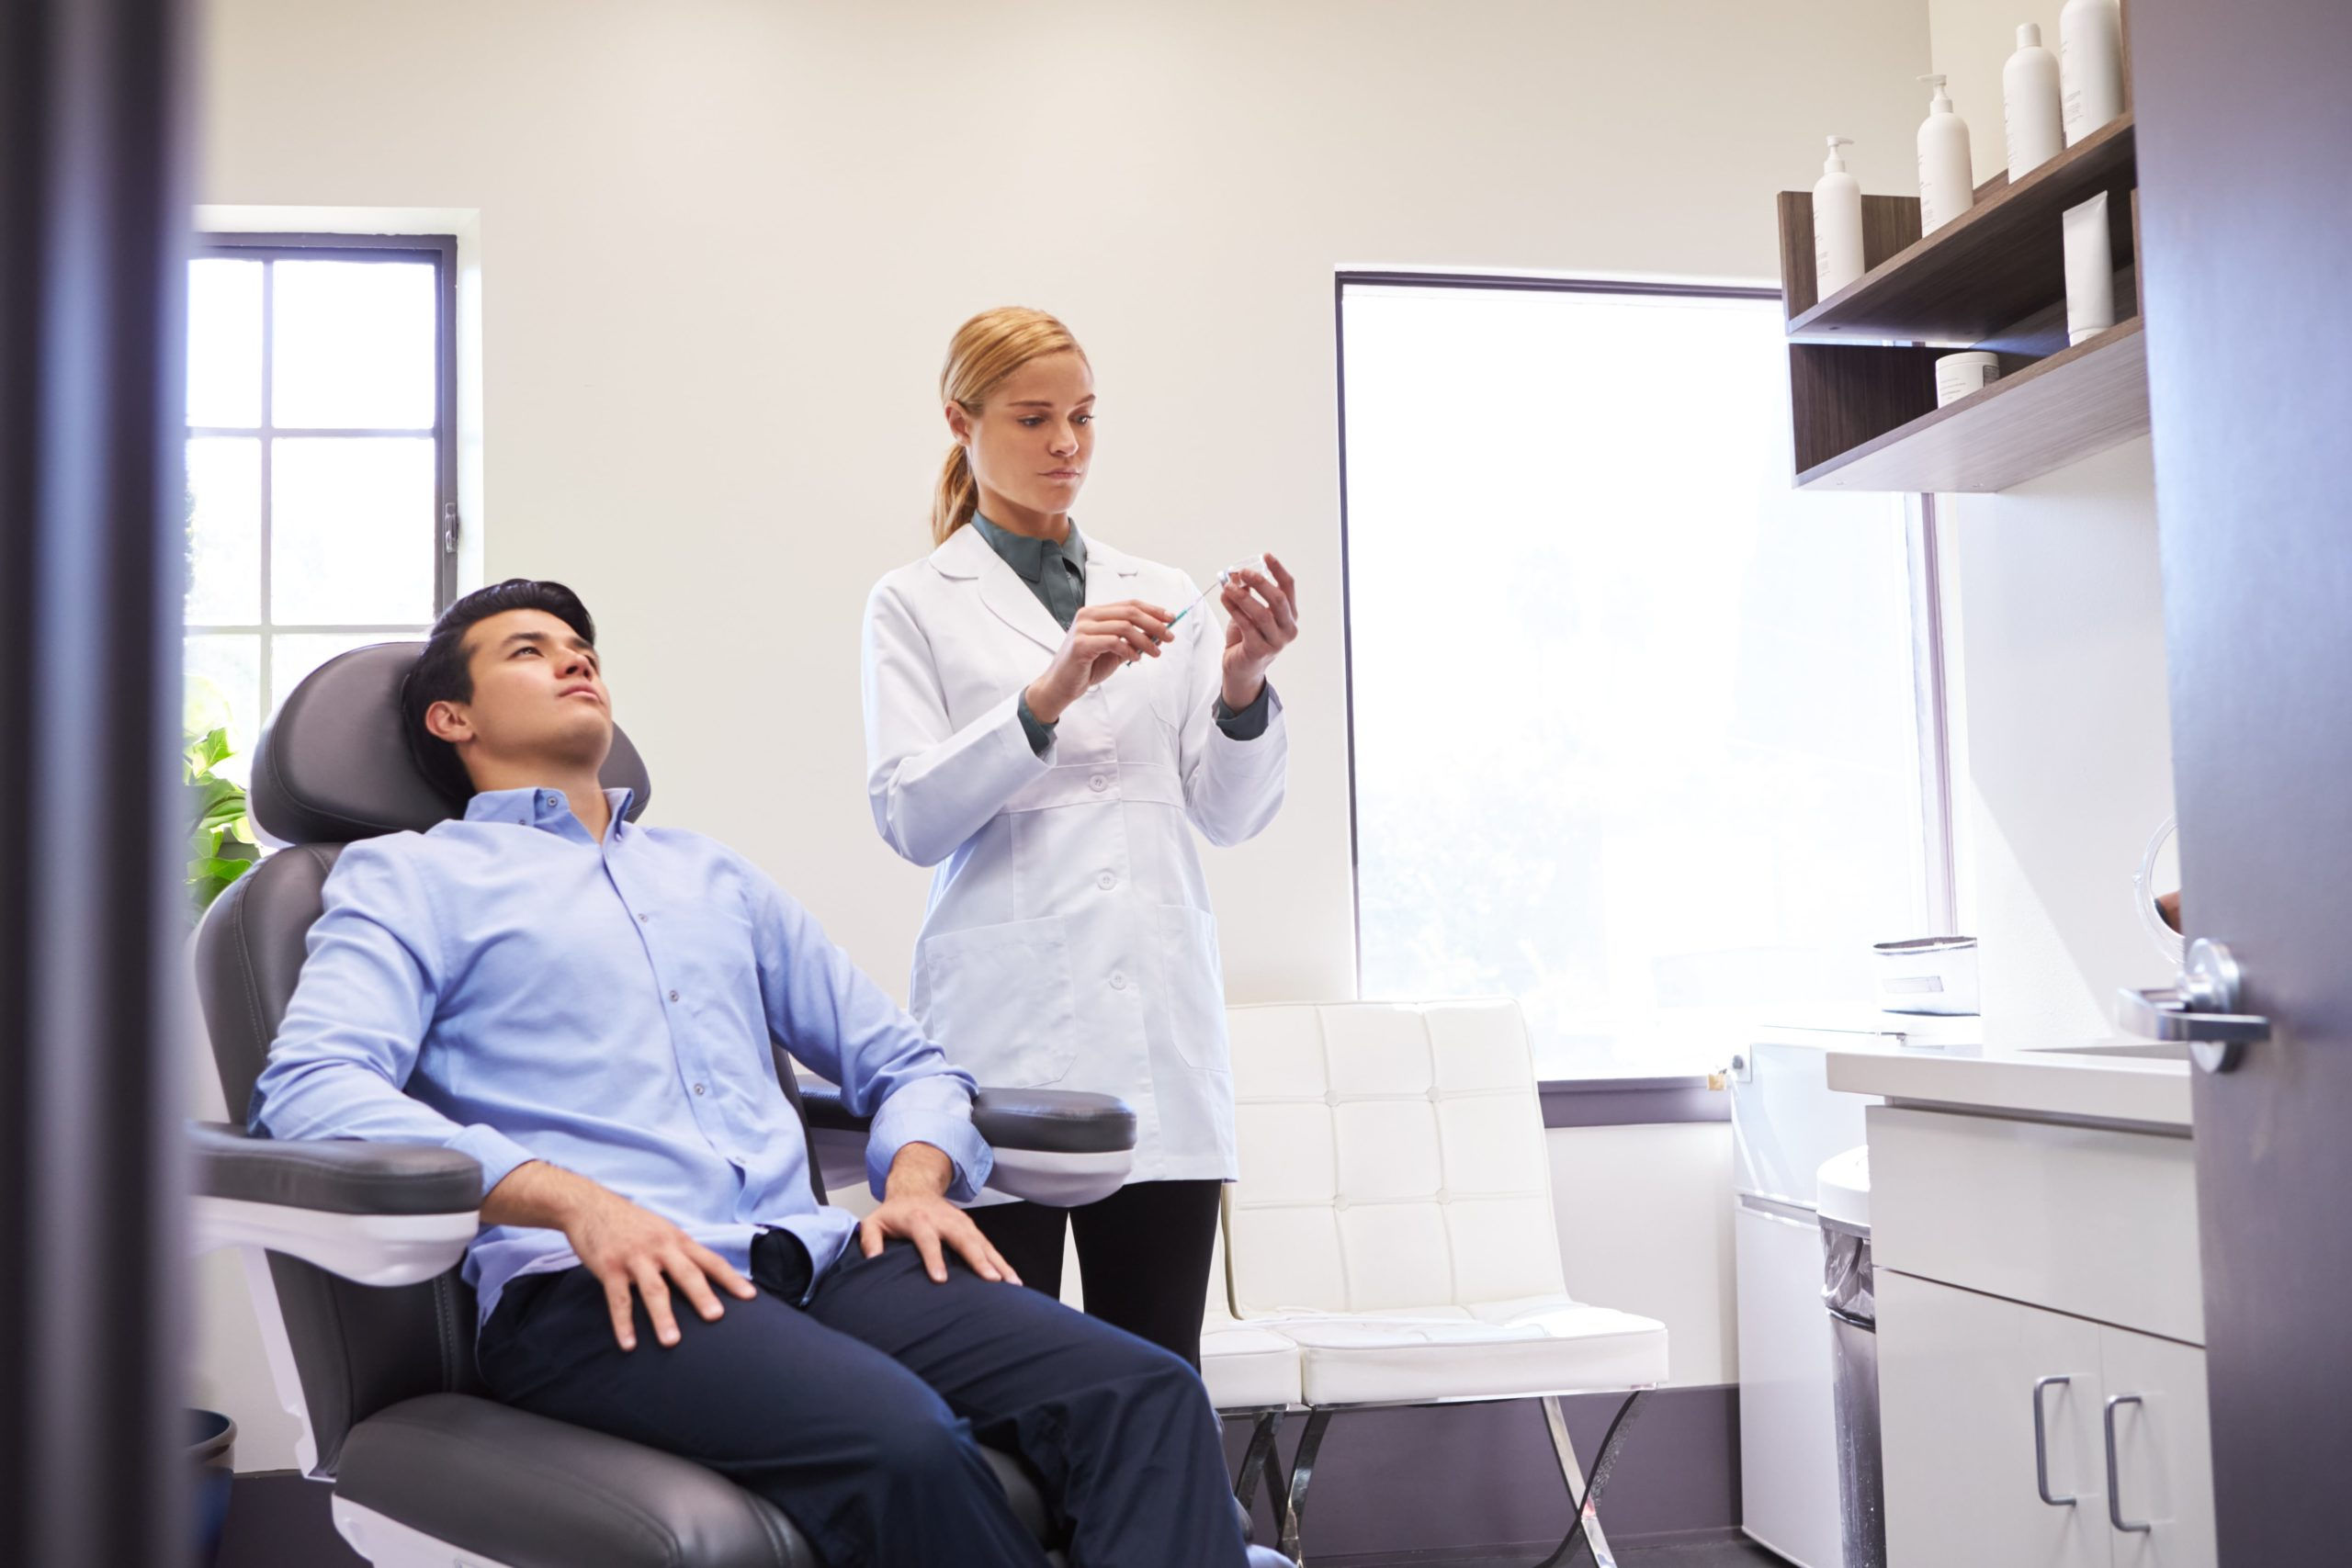 man sitting in chair being give botox injection